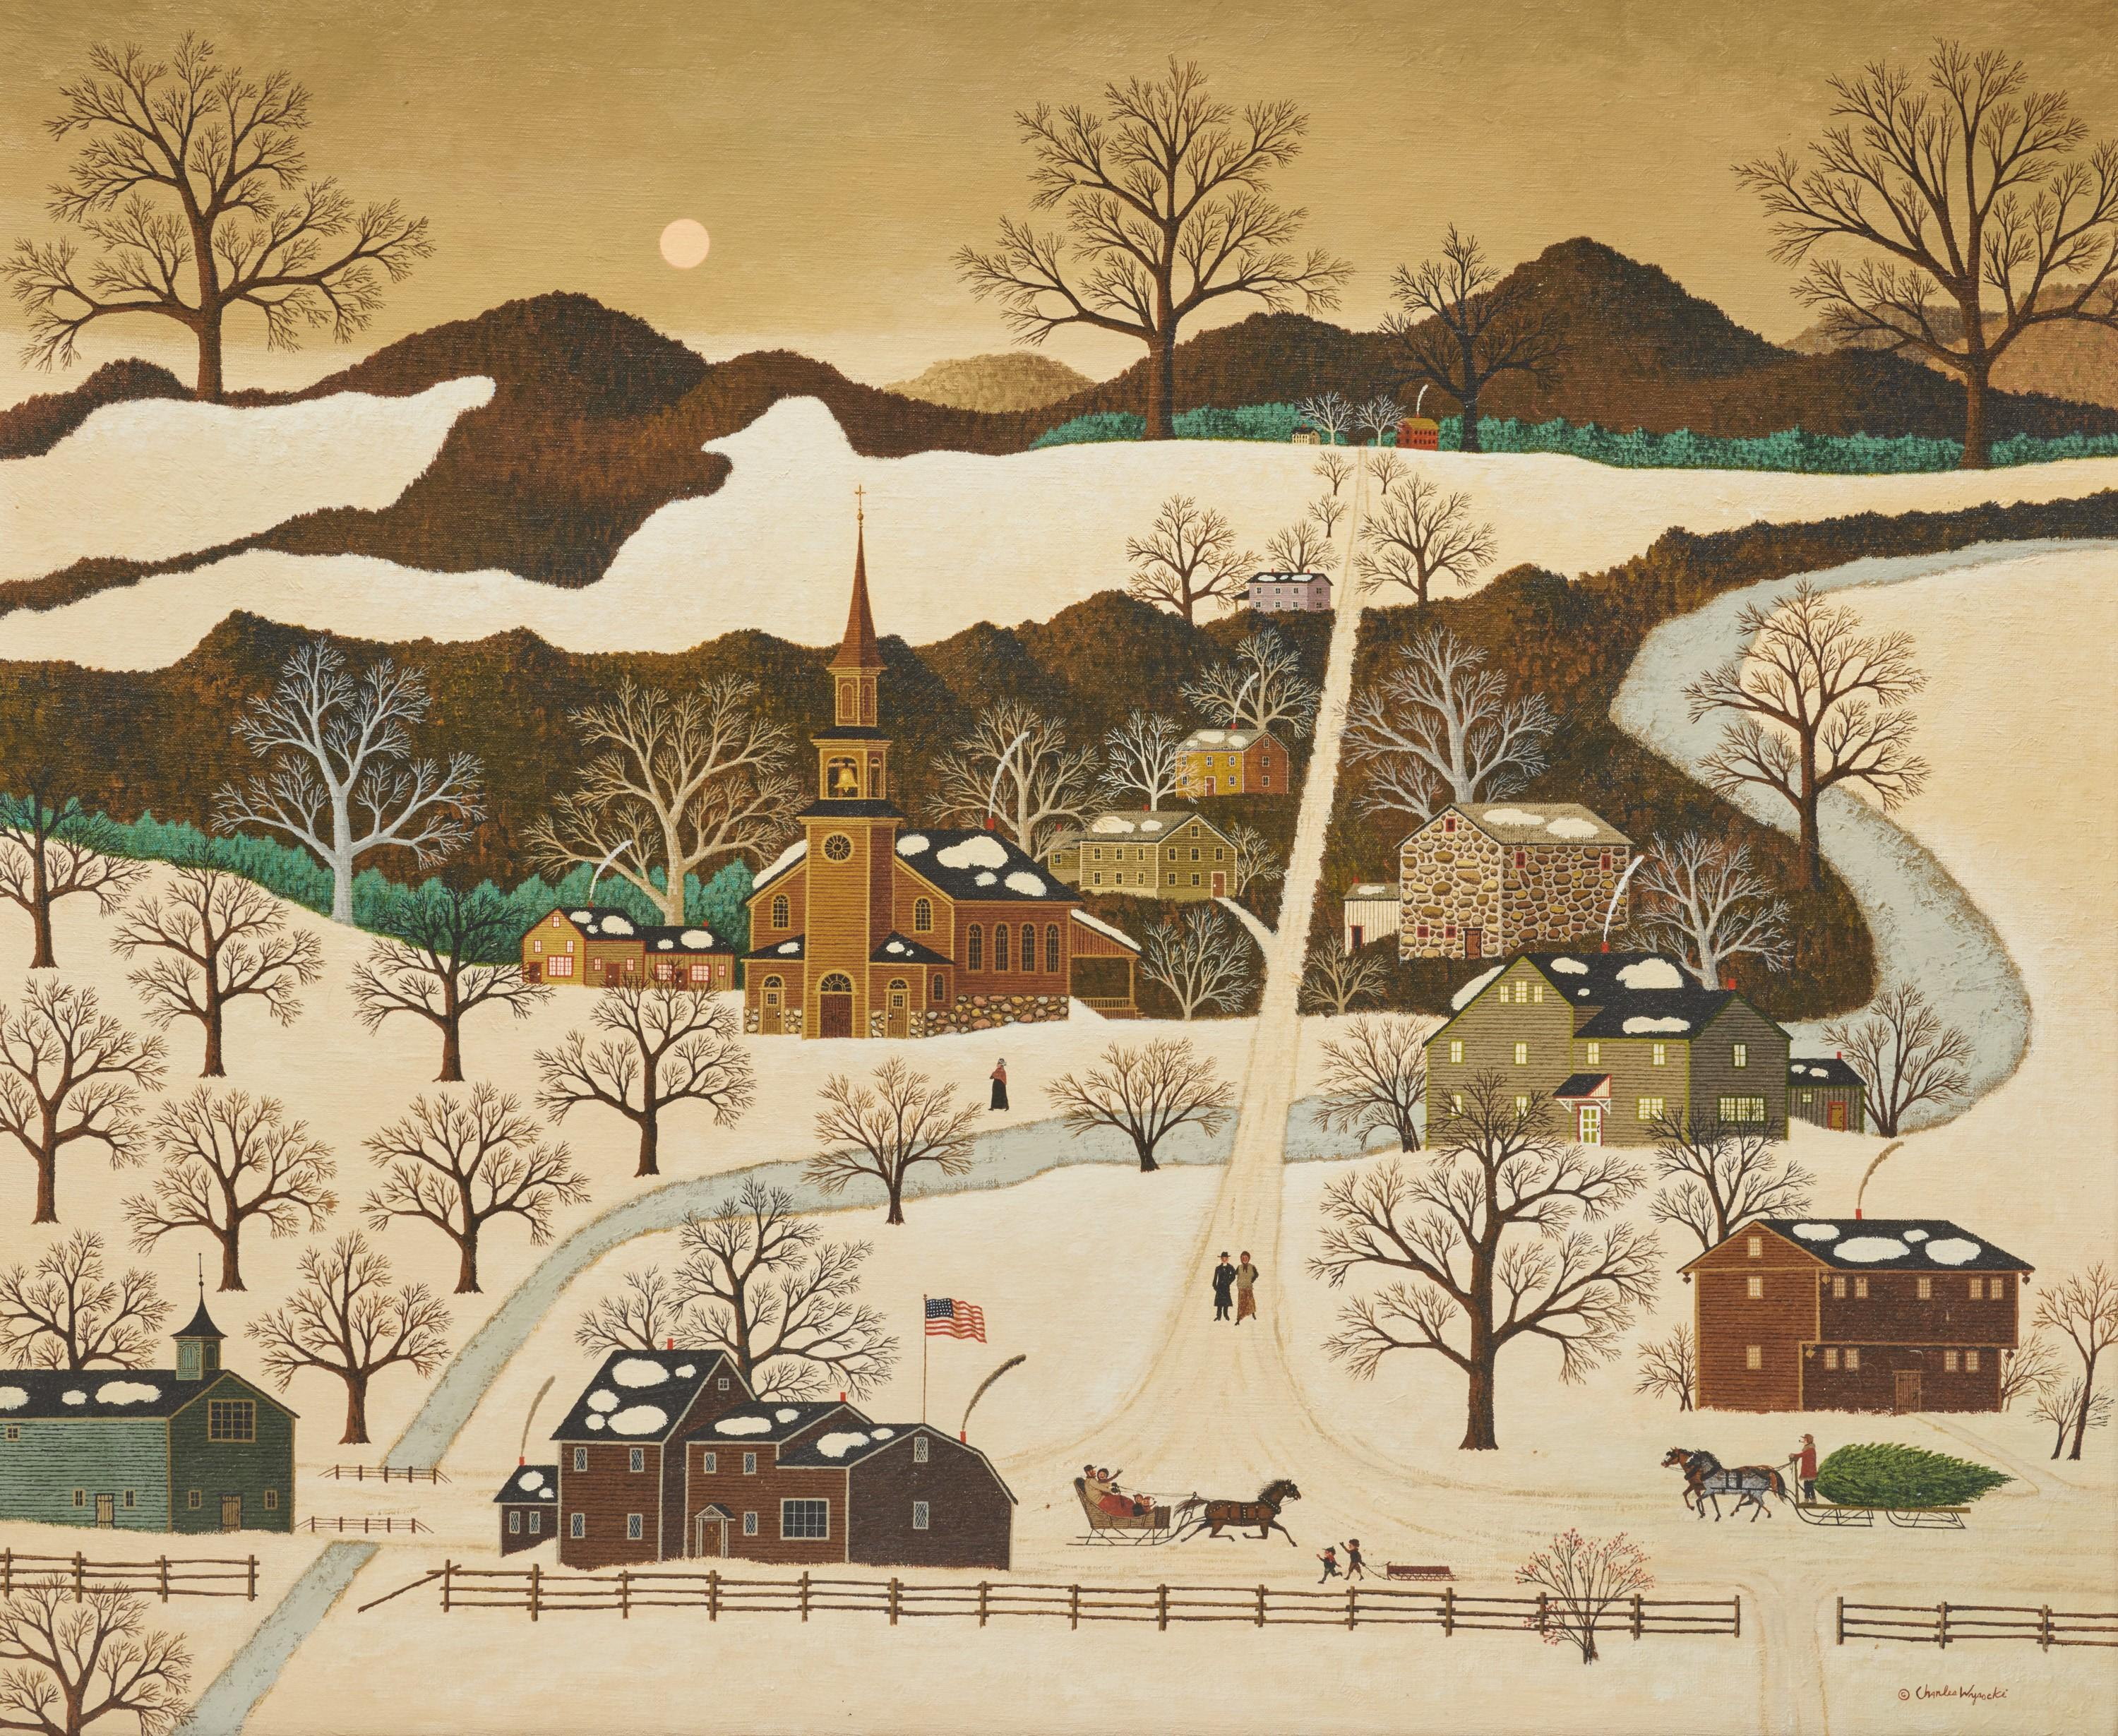 CHARLES WYSOCKI, (American, 1928-2002), Connecticut Snowscape, oil on canvas, 30 x 36 in., frame: 37 x 43 in.